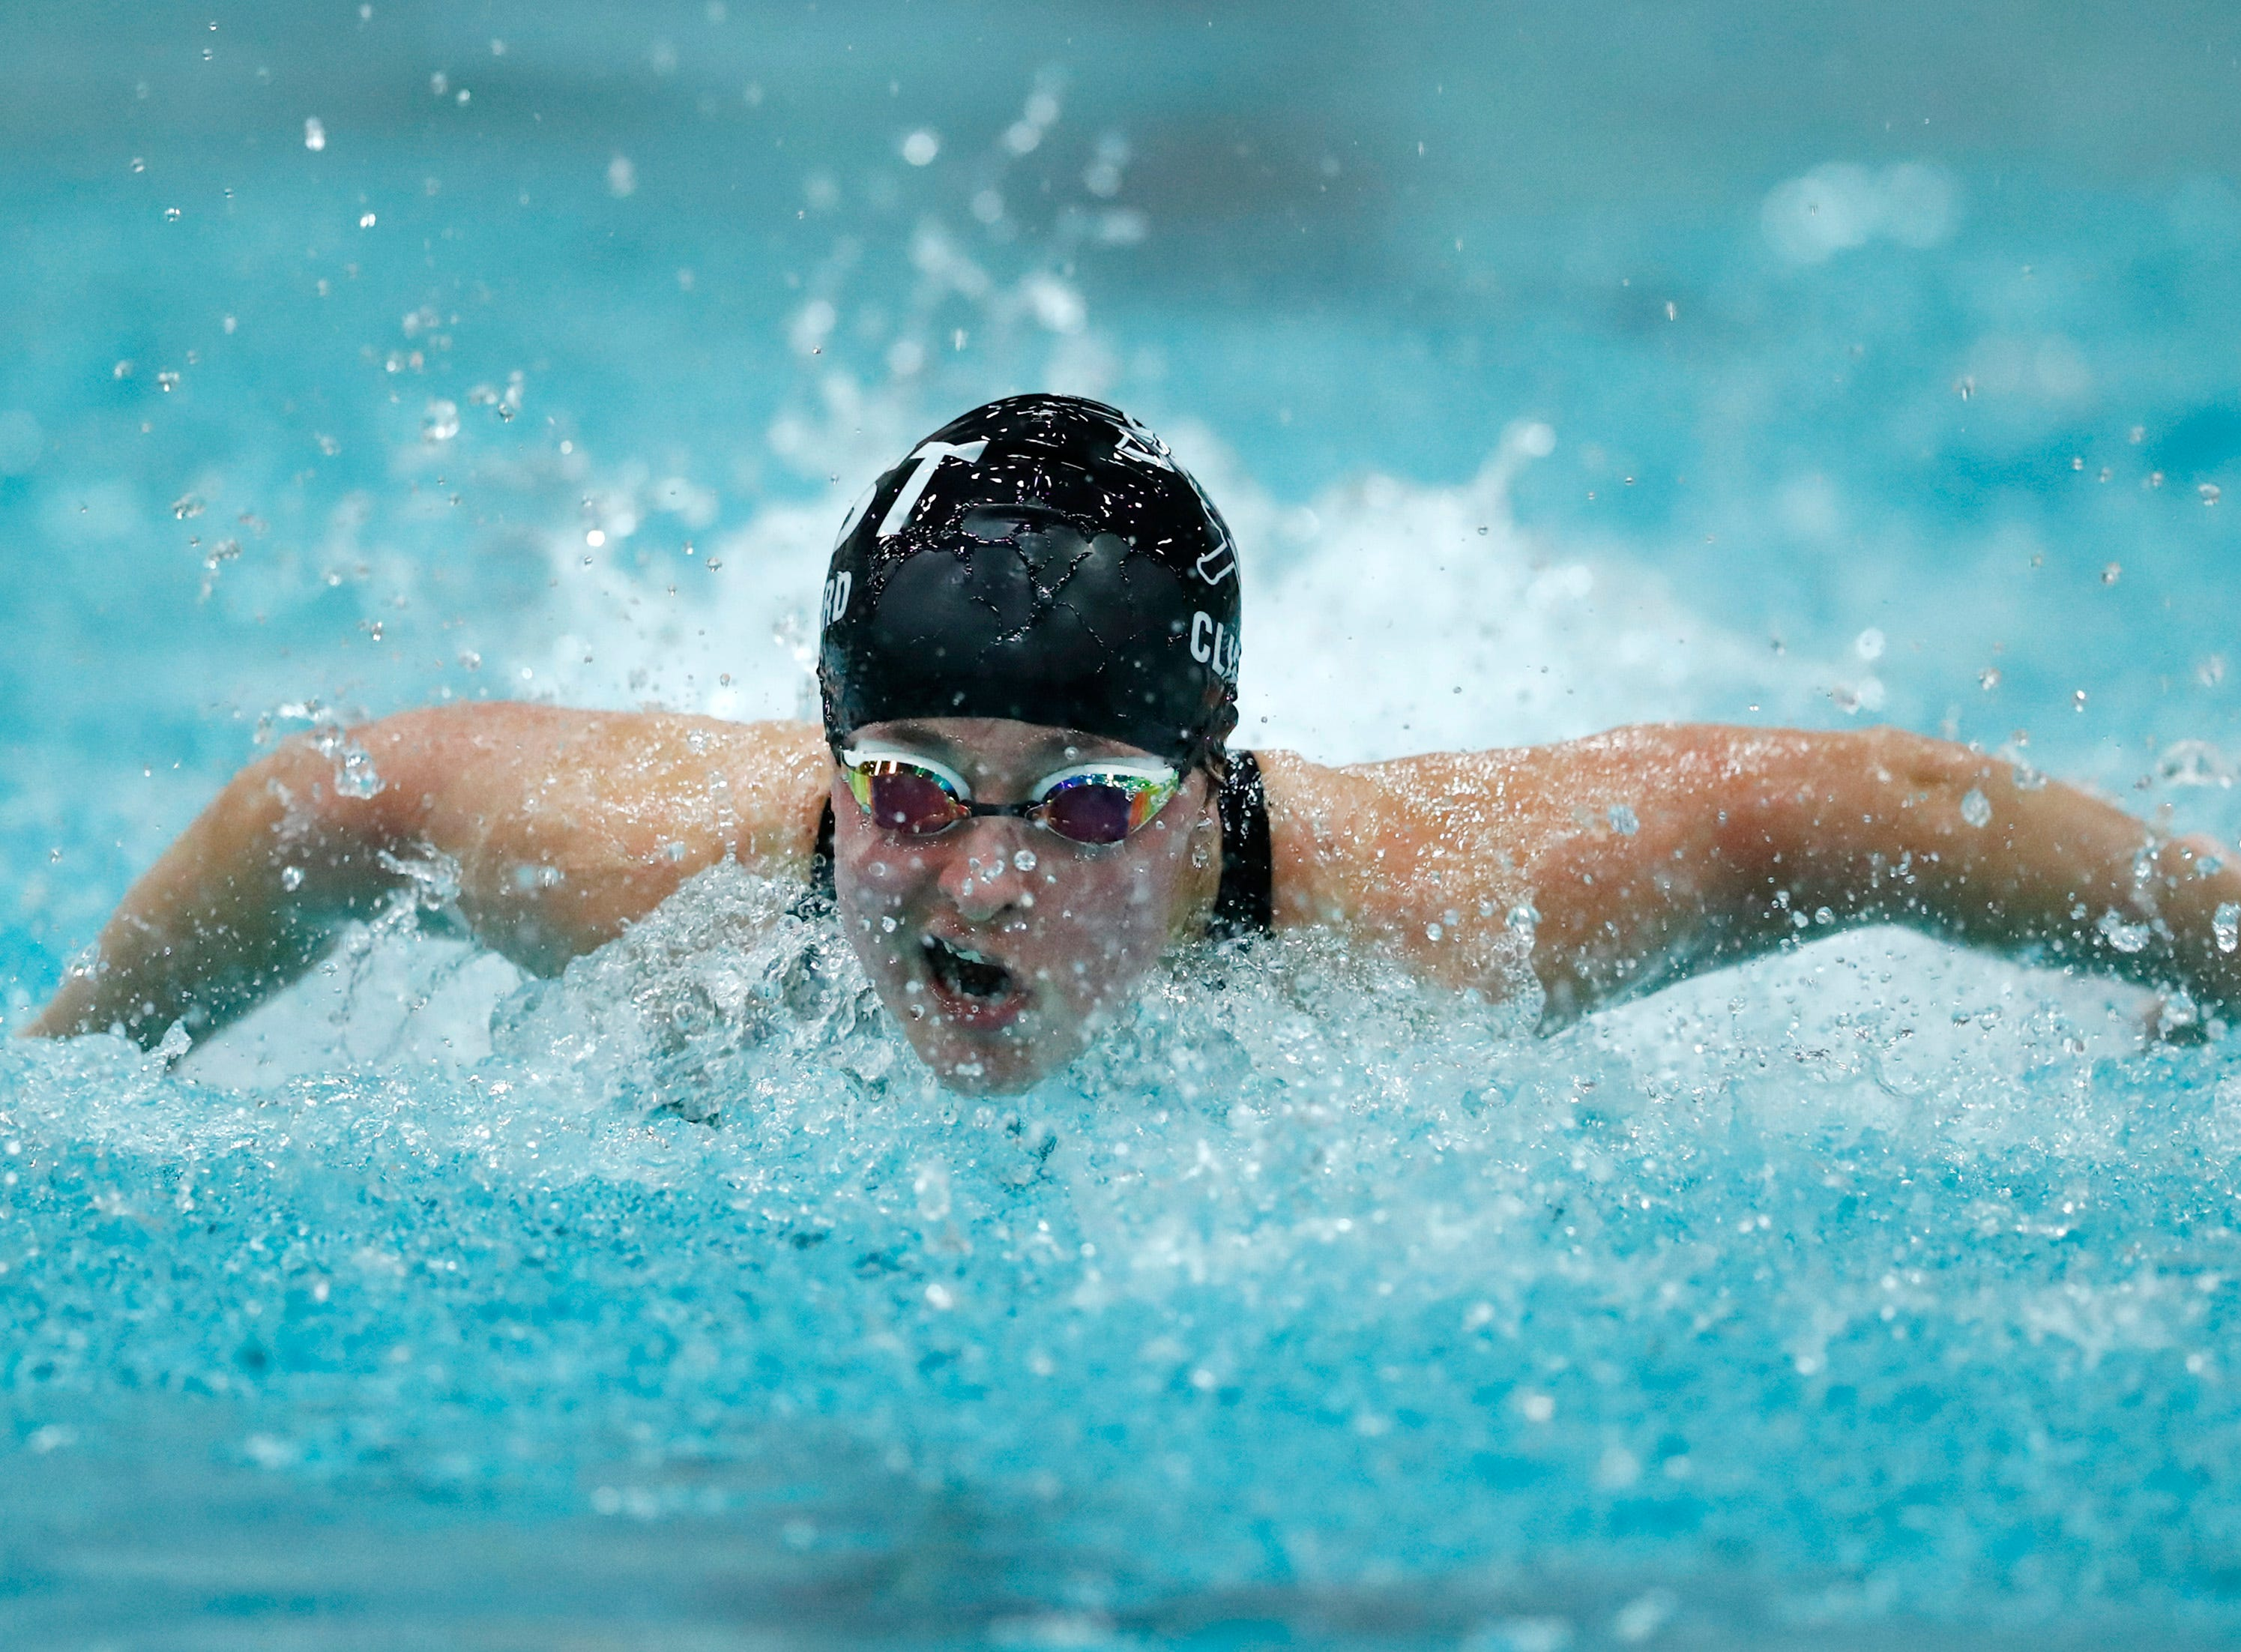 Wausau East's Emma Clifford races in the 100 yard butterfly during the WIAA Division 2 State Swimming and Diving meet Friday, Nov. 9, 2018, at the UW Natatorium in Madison, Wis.Danny Damiani/USA TODAY NETWORK-Wisconsin